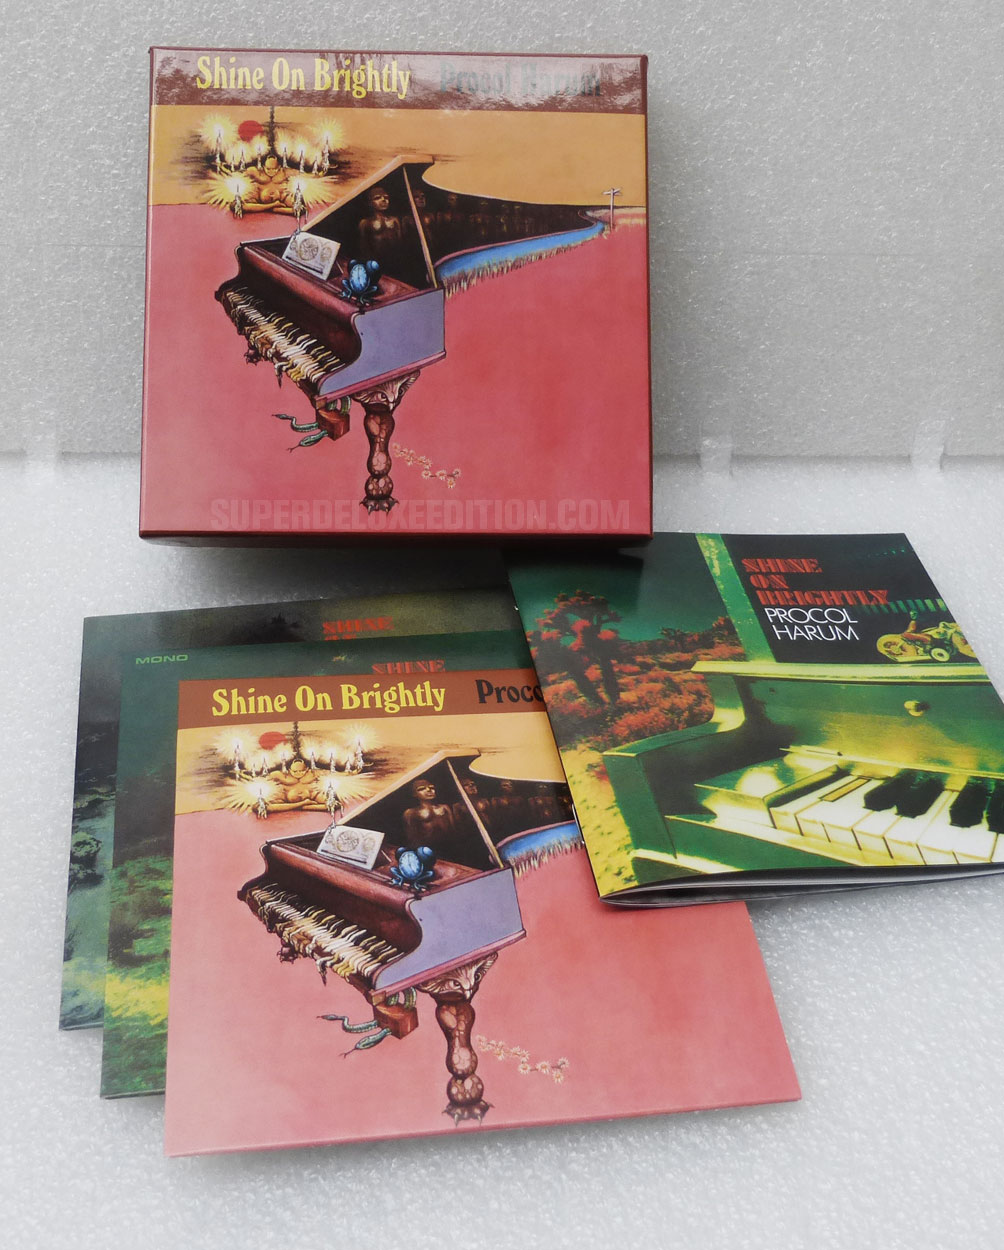 FIRST PICTURES / Procol Harum: Shine On Brightly box set